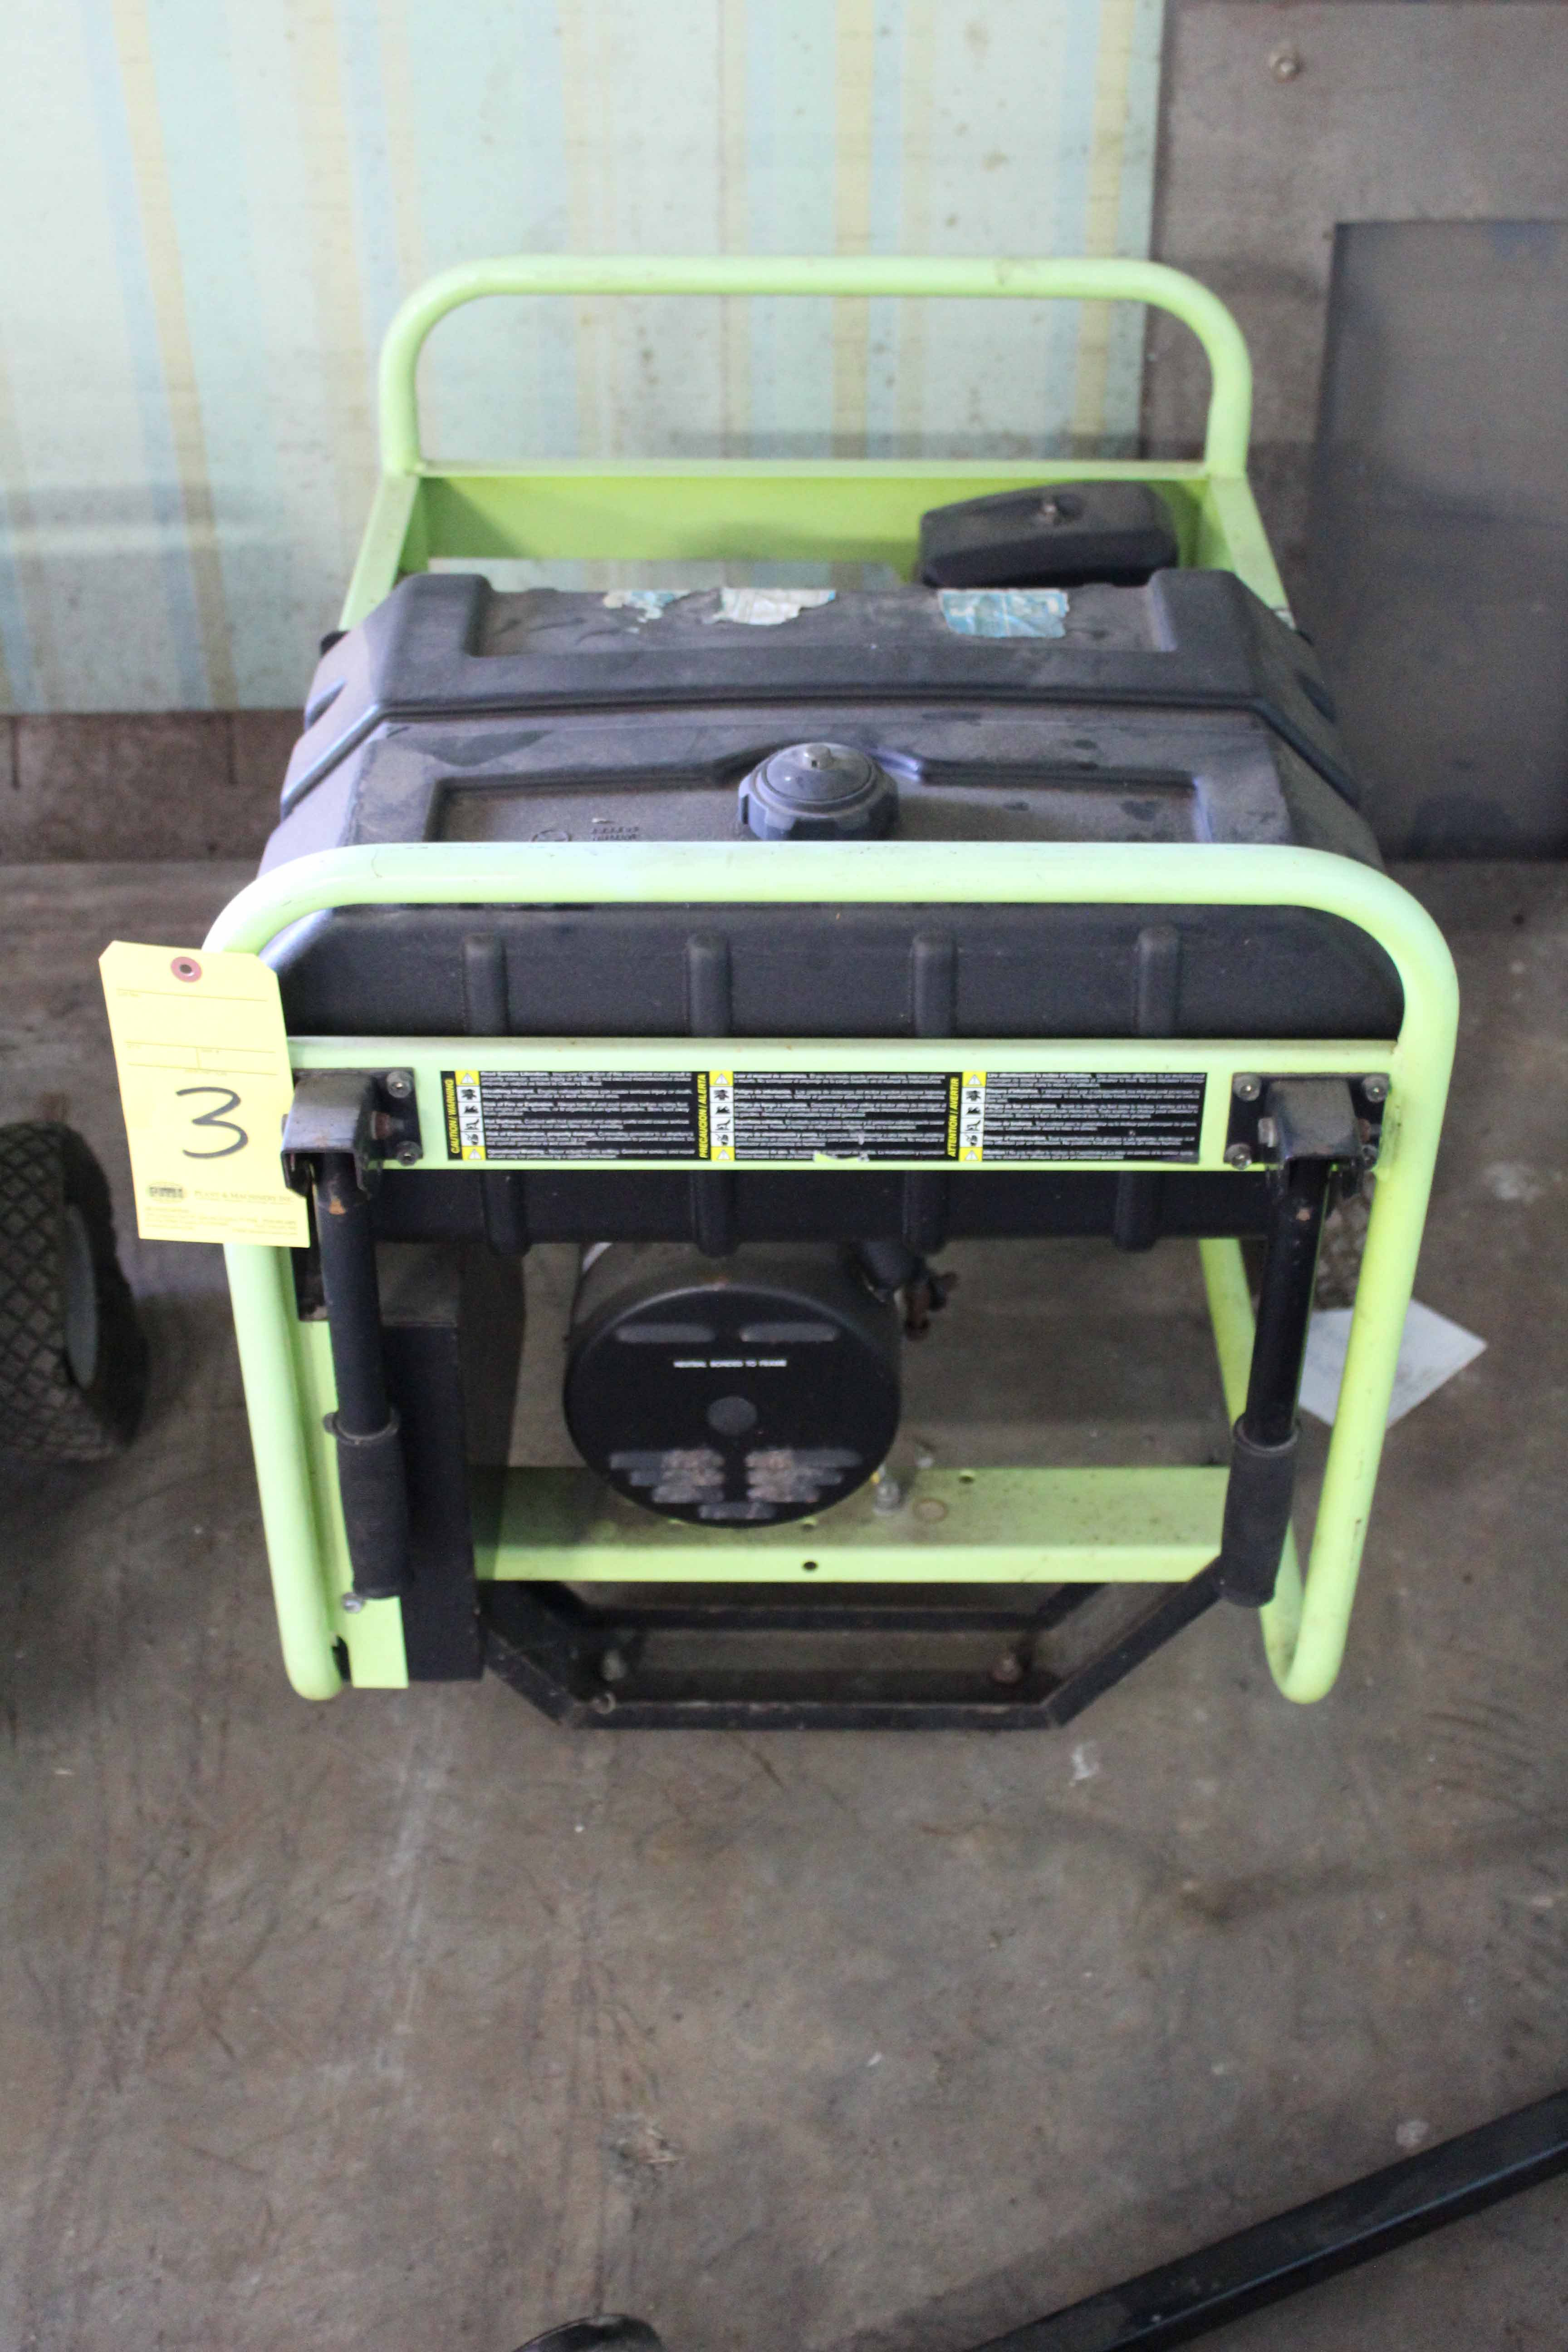 Lot 3 - PORTABLE GENERATOR, PRAMAC, 5,000 watt, gasoline pwrd.